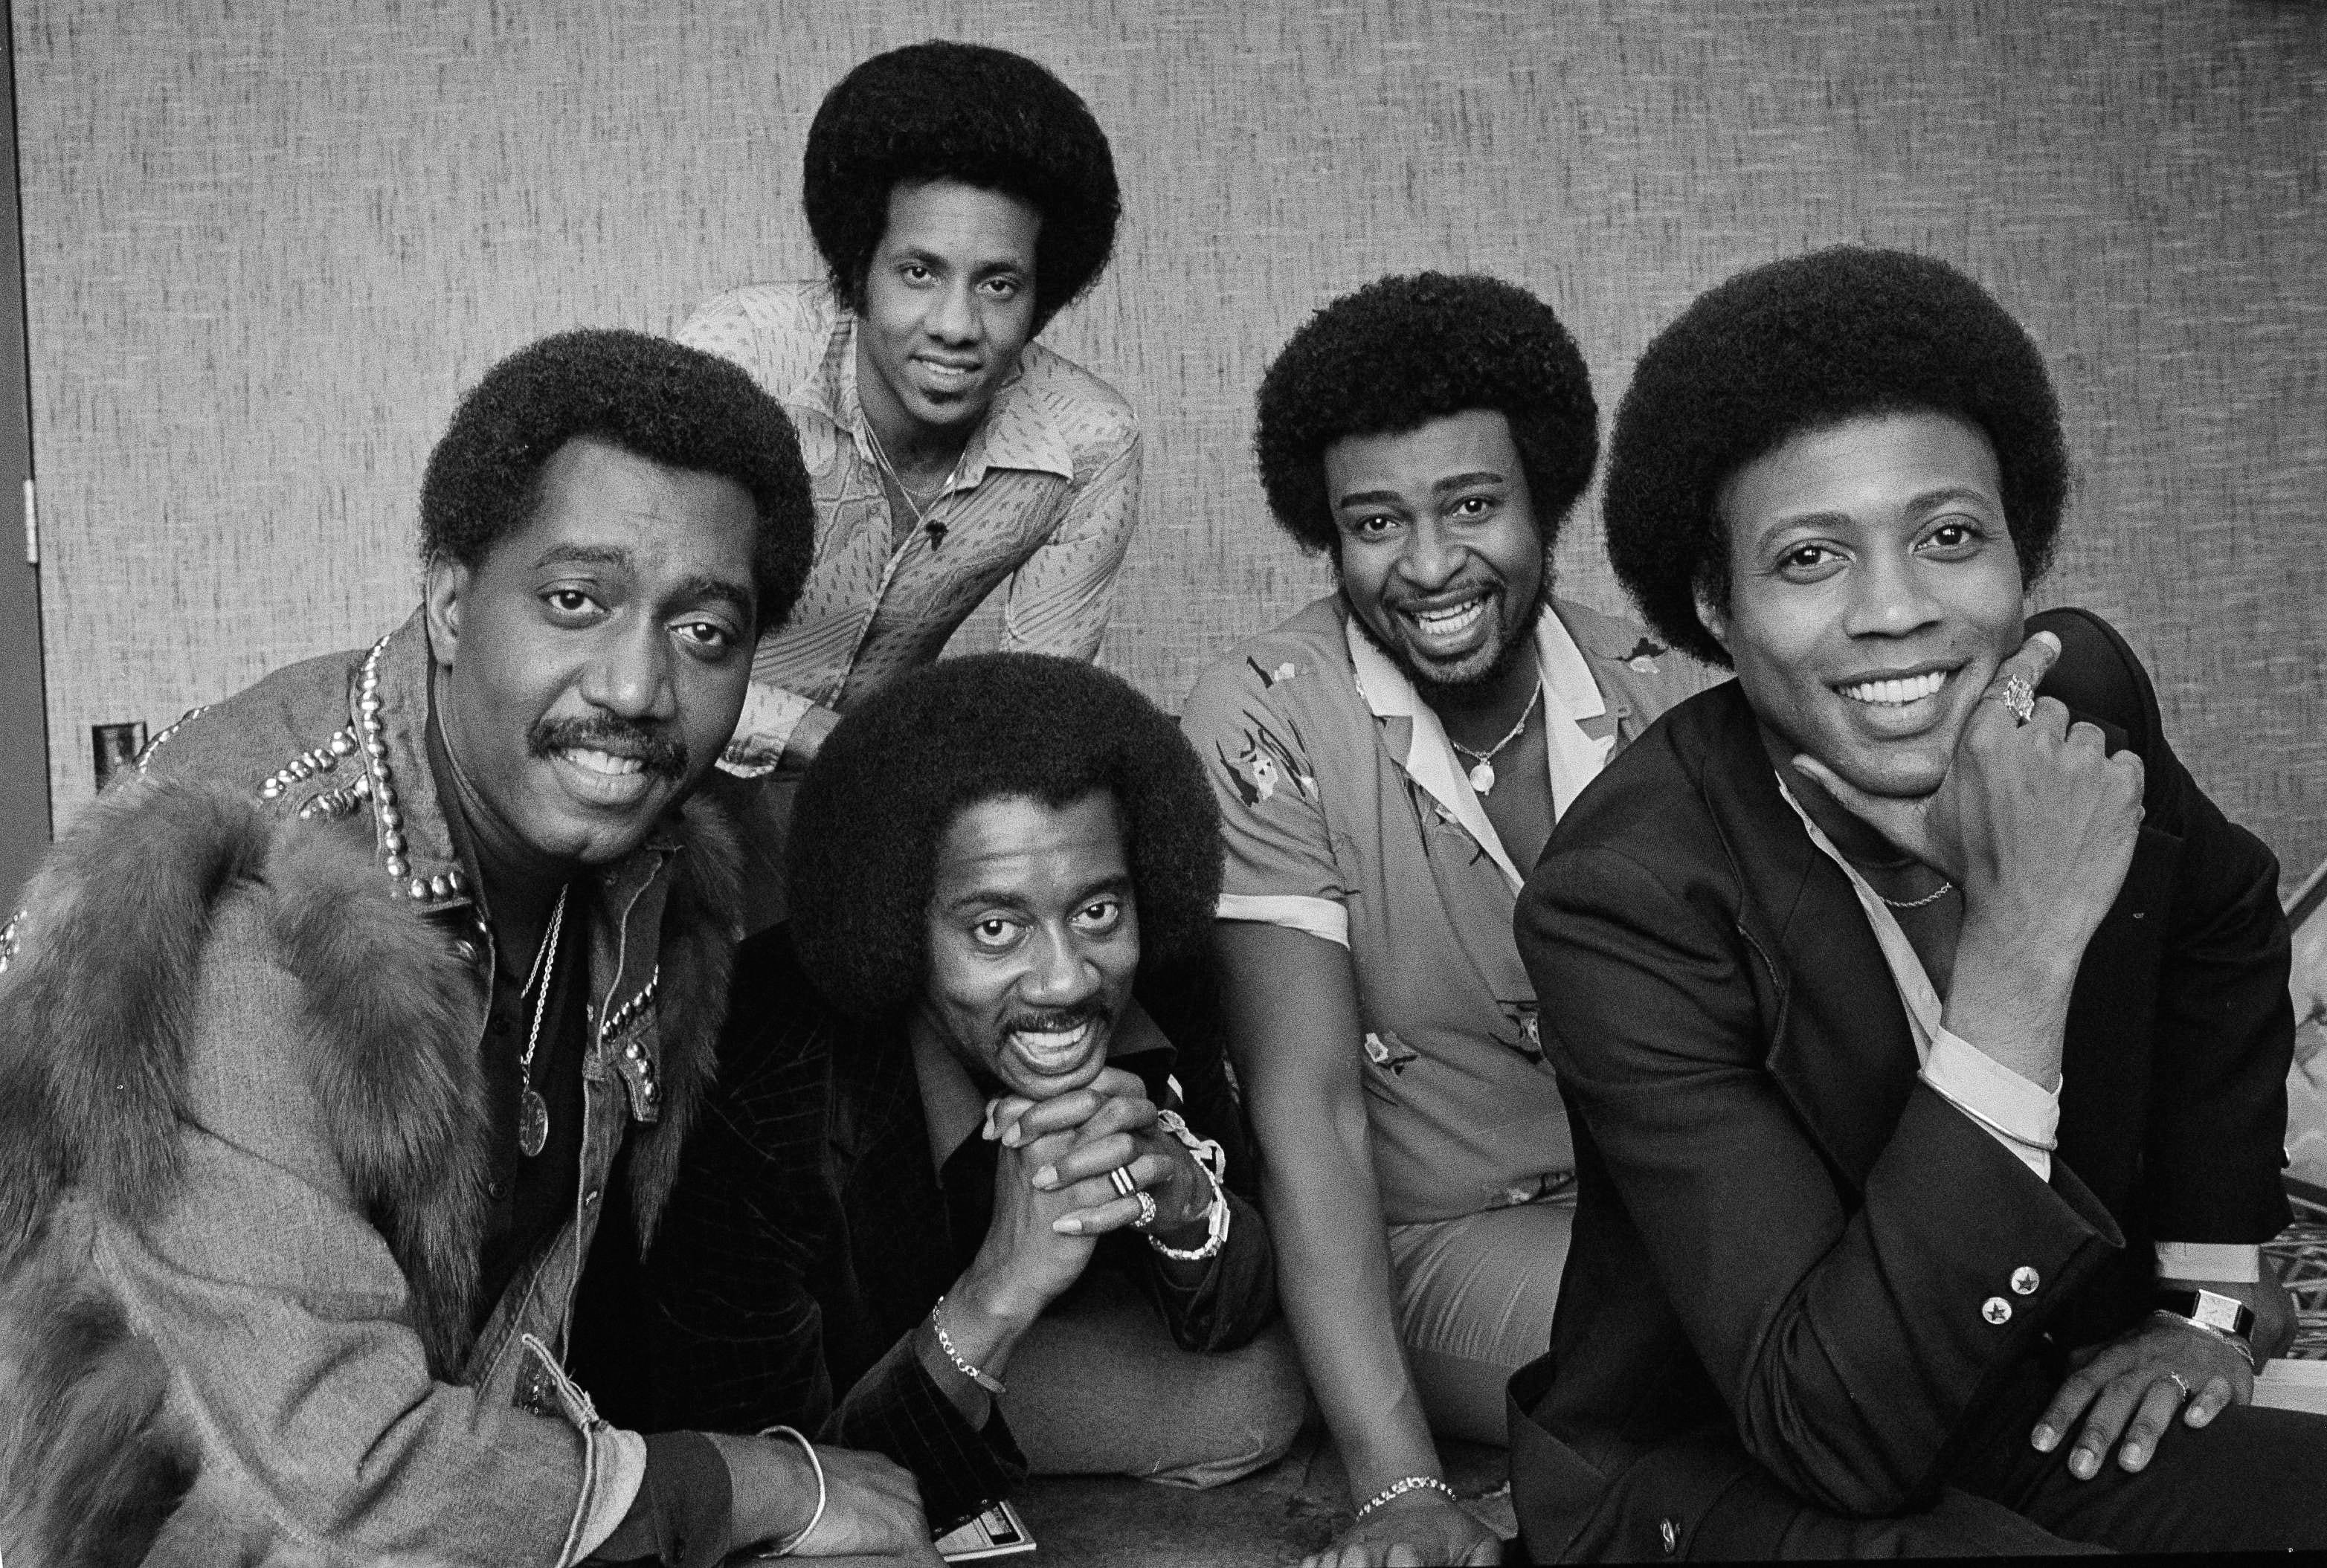 The Temptations singing group. From left are; Otis Williams, Melvin Franklin and Glenn Leonard. Back row from left, Richard Street and Dennis Edwards.